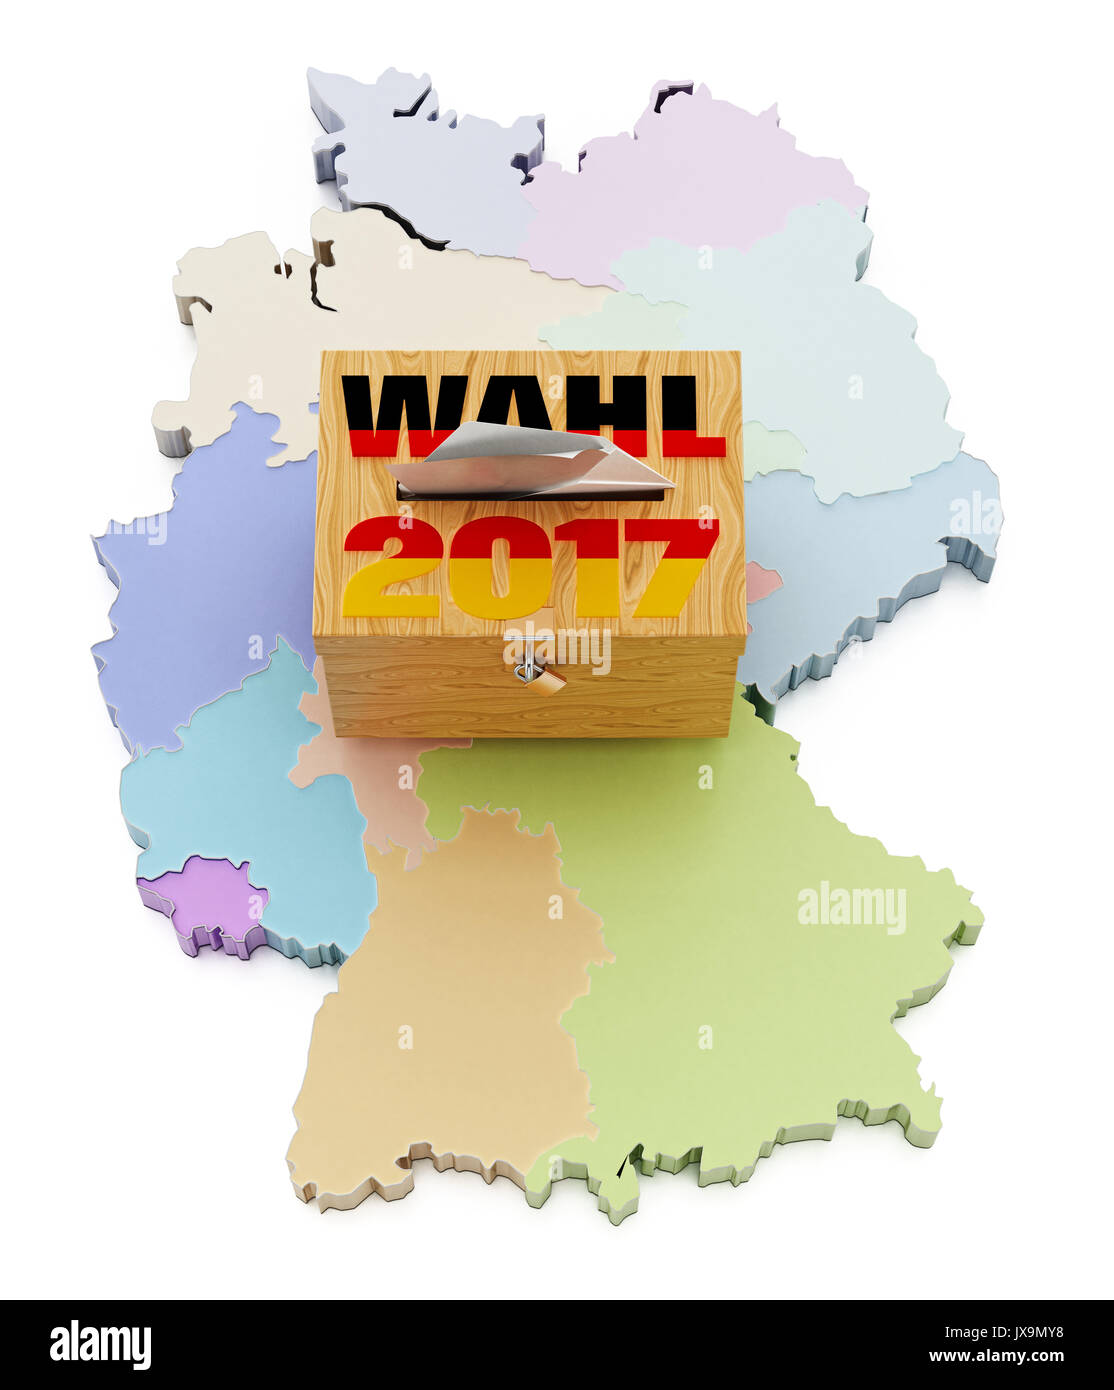 Map Of Germany Divided.Ballot Box On Germany Map Divided Into Regions 3d Illustration